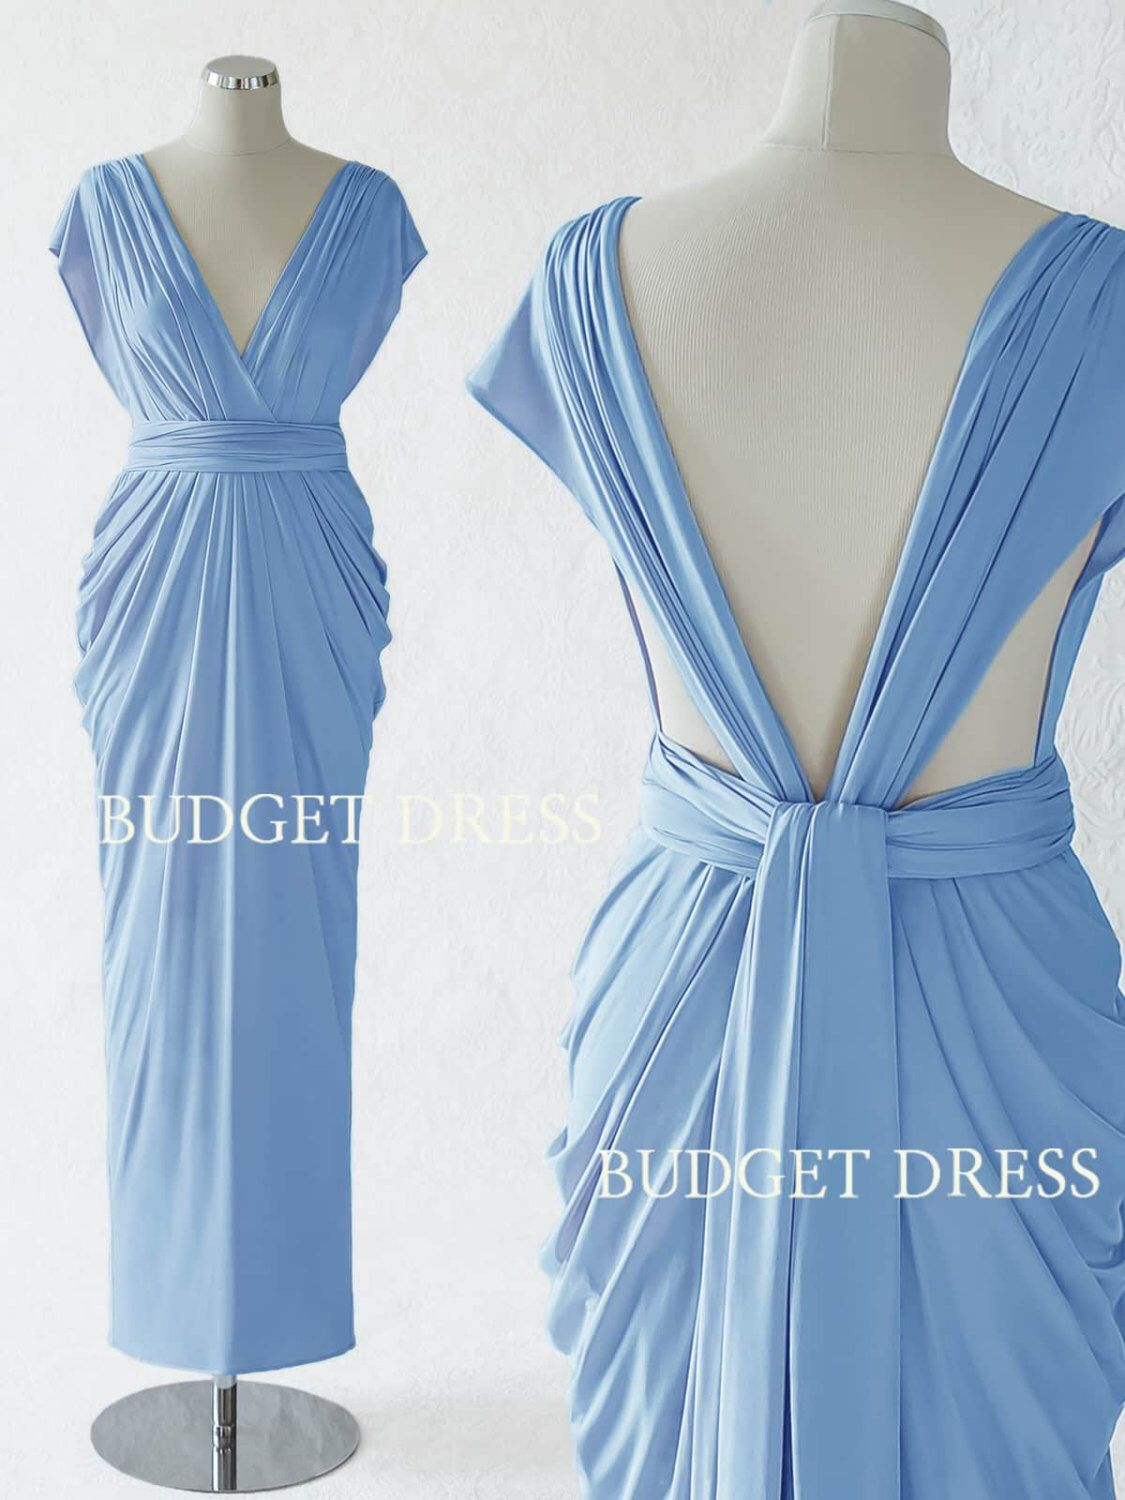 2017 new style cornflower blue convertible dress maxi convertible 2017 new style cornflower blue convertible dress maxi convertible bridesmaid dress multiway prom dress ombrellifo Image collections